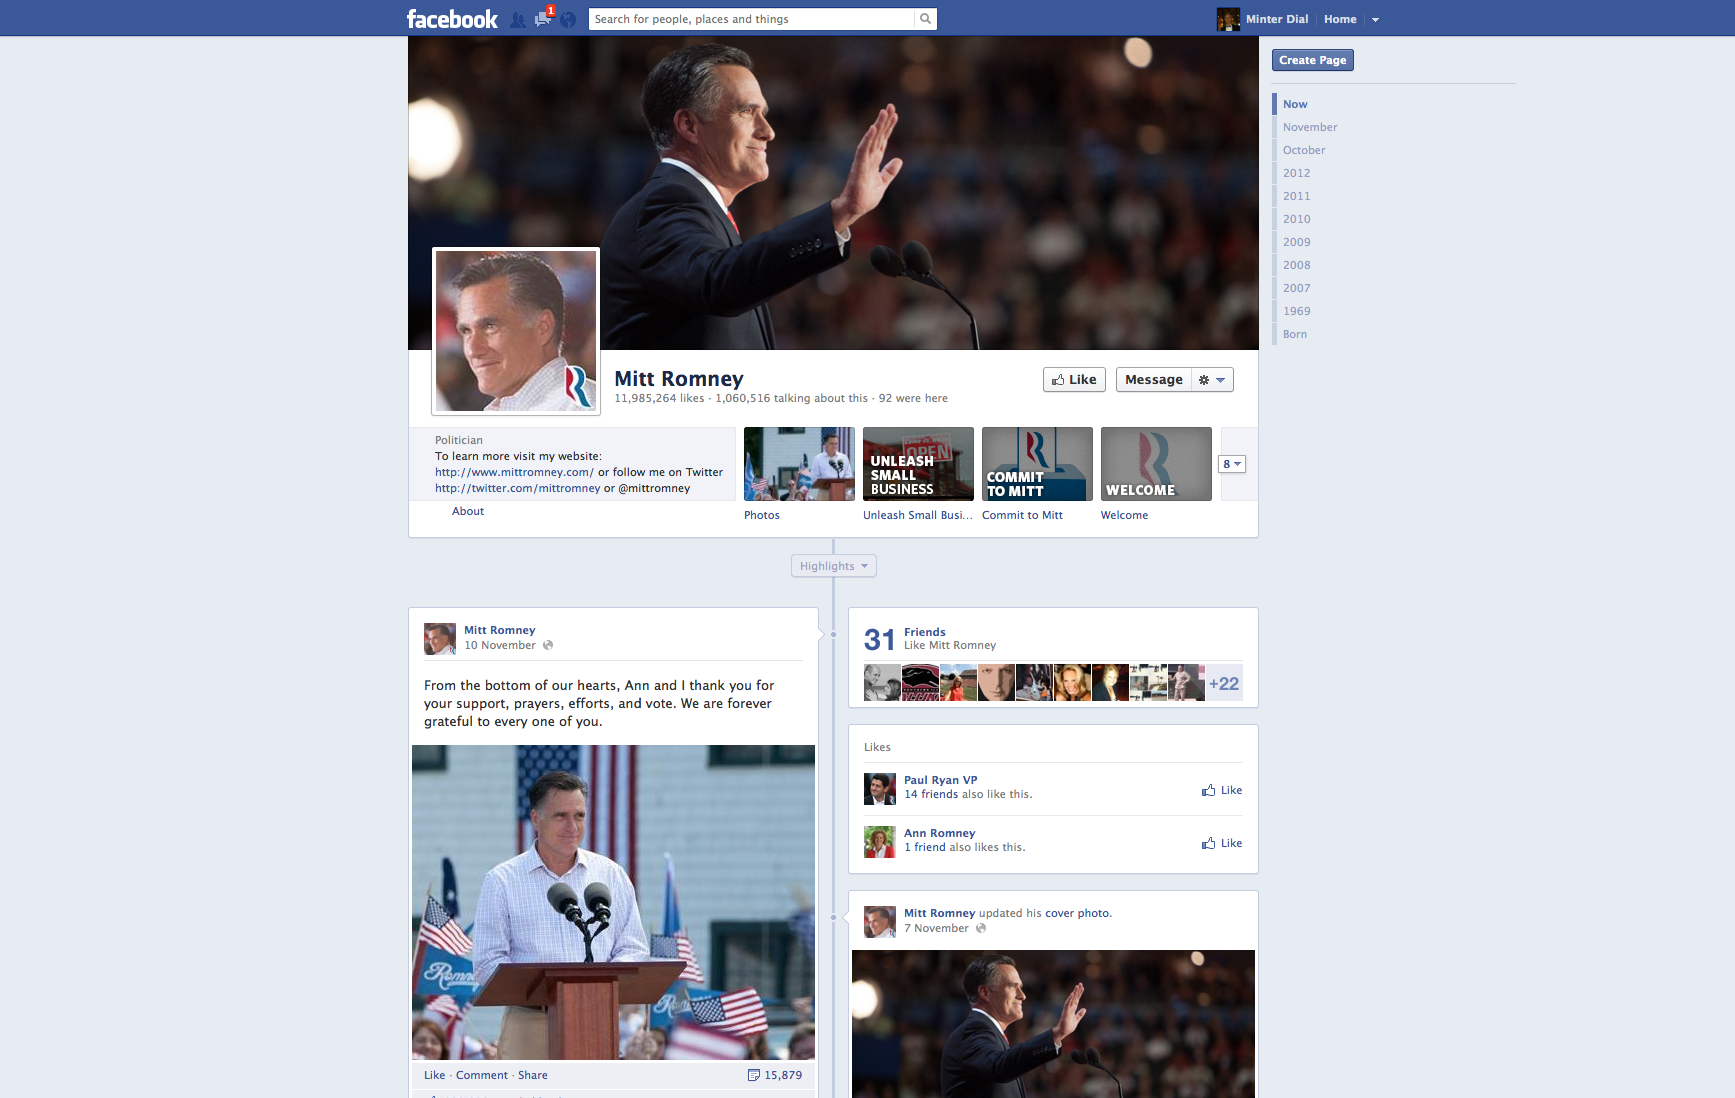 Mitt Romney Facebook page, The Myndset Digital marketing and brand strategy